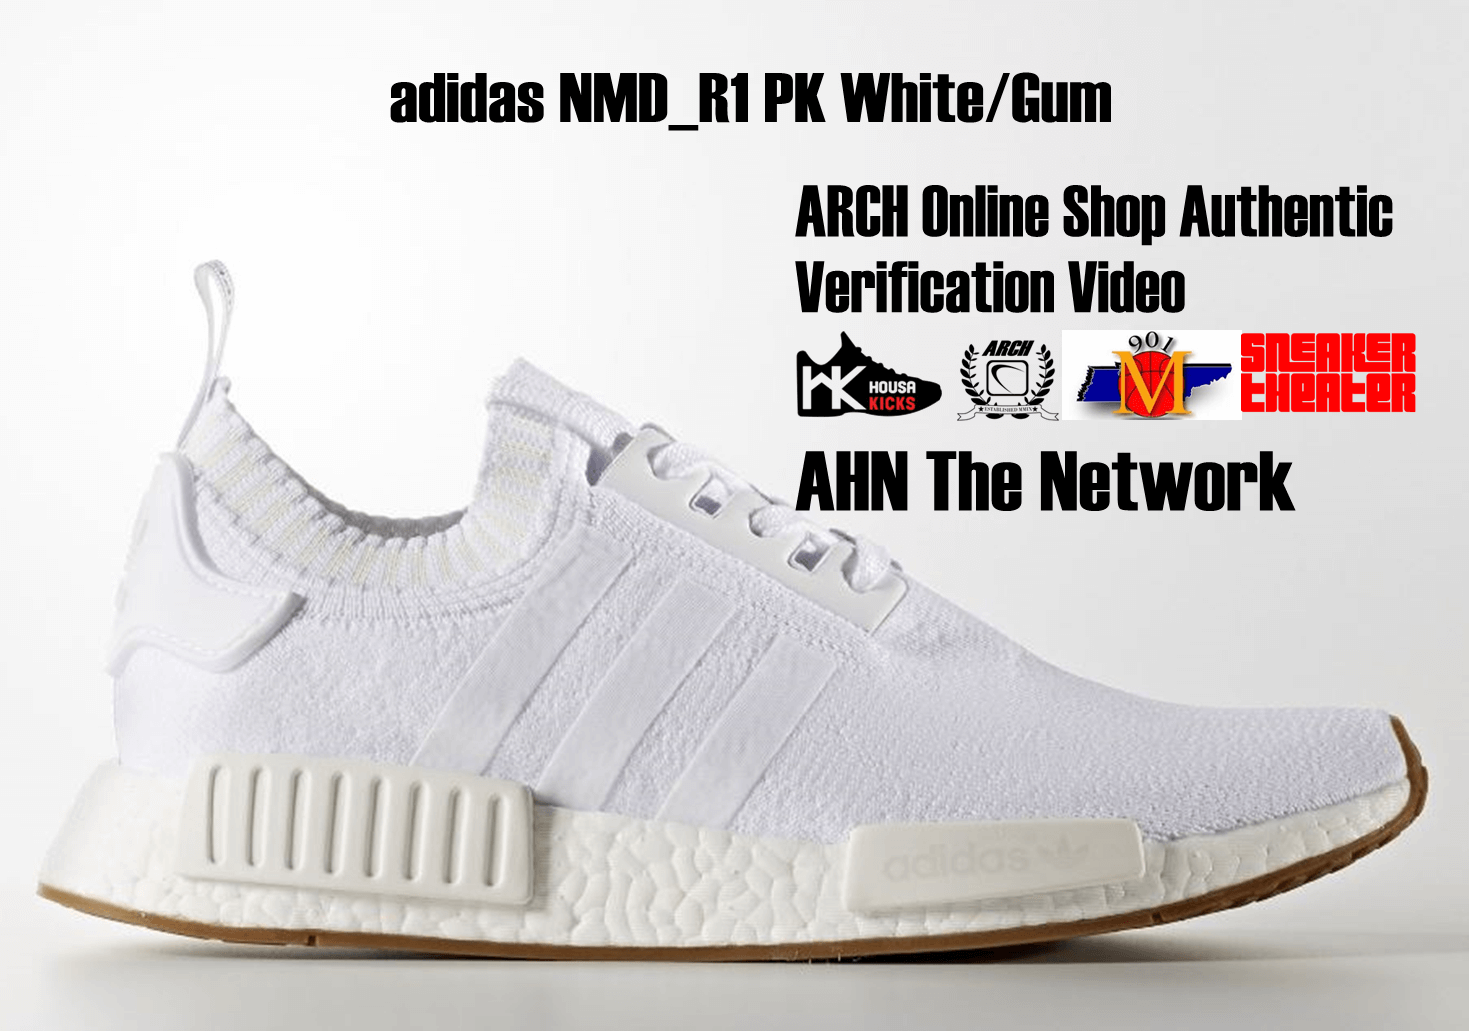 adidas NMD R1 PK WhiteGum | Authentic Verification – ARCH USA